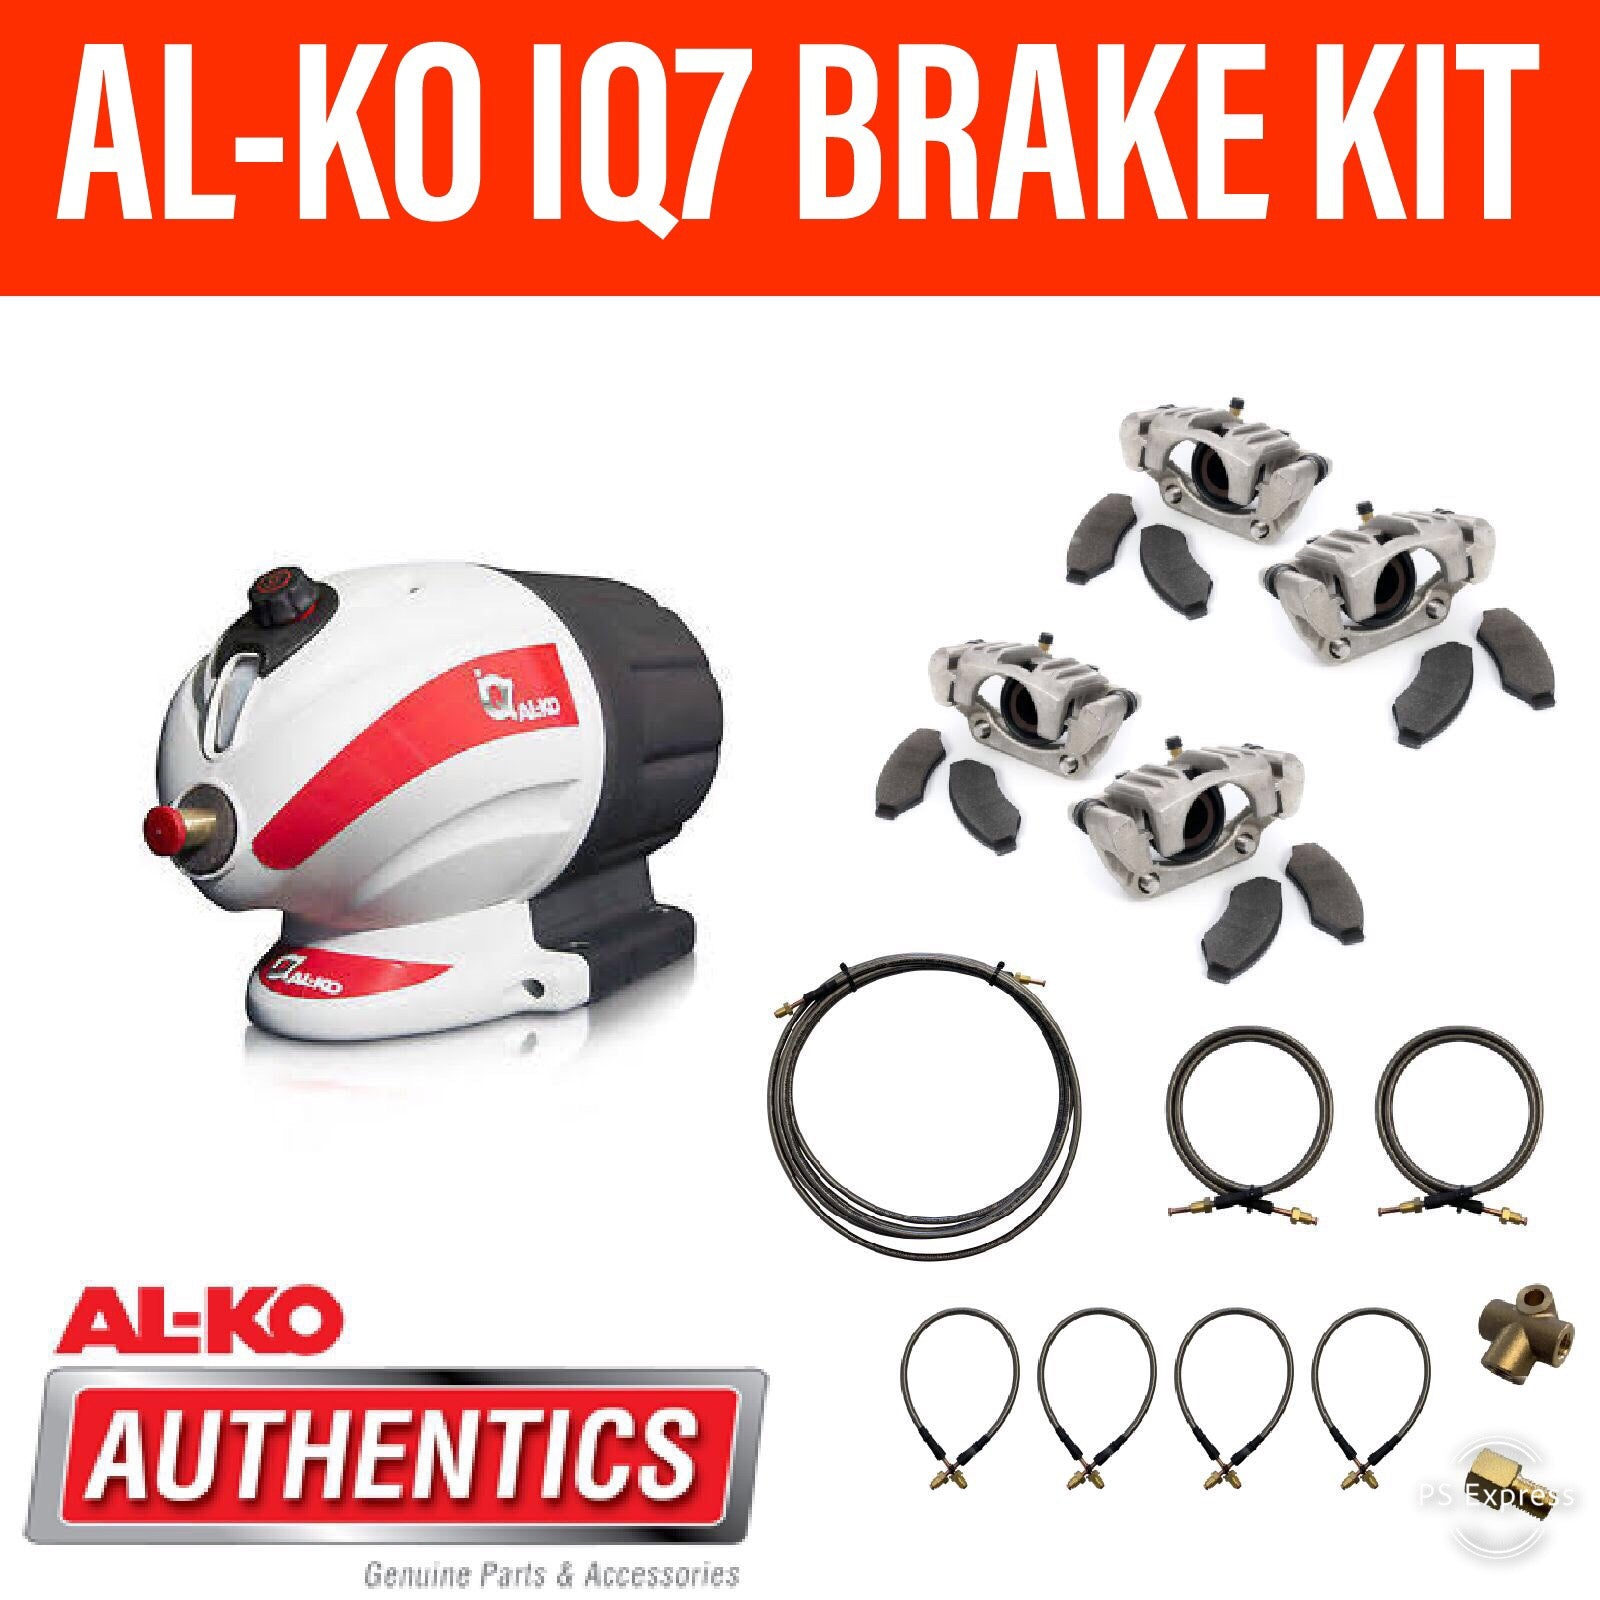 AL-KO IQ7 BRAKE KIT With Calipers and S/S Brake Lines